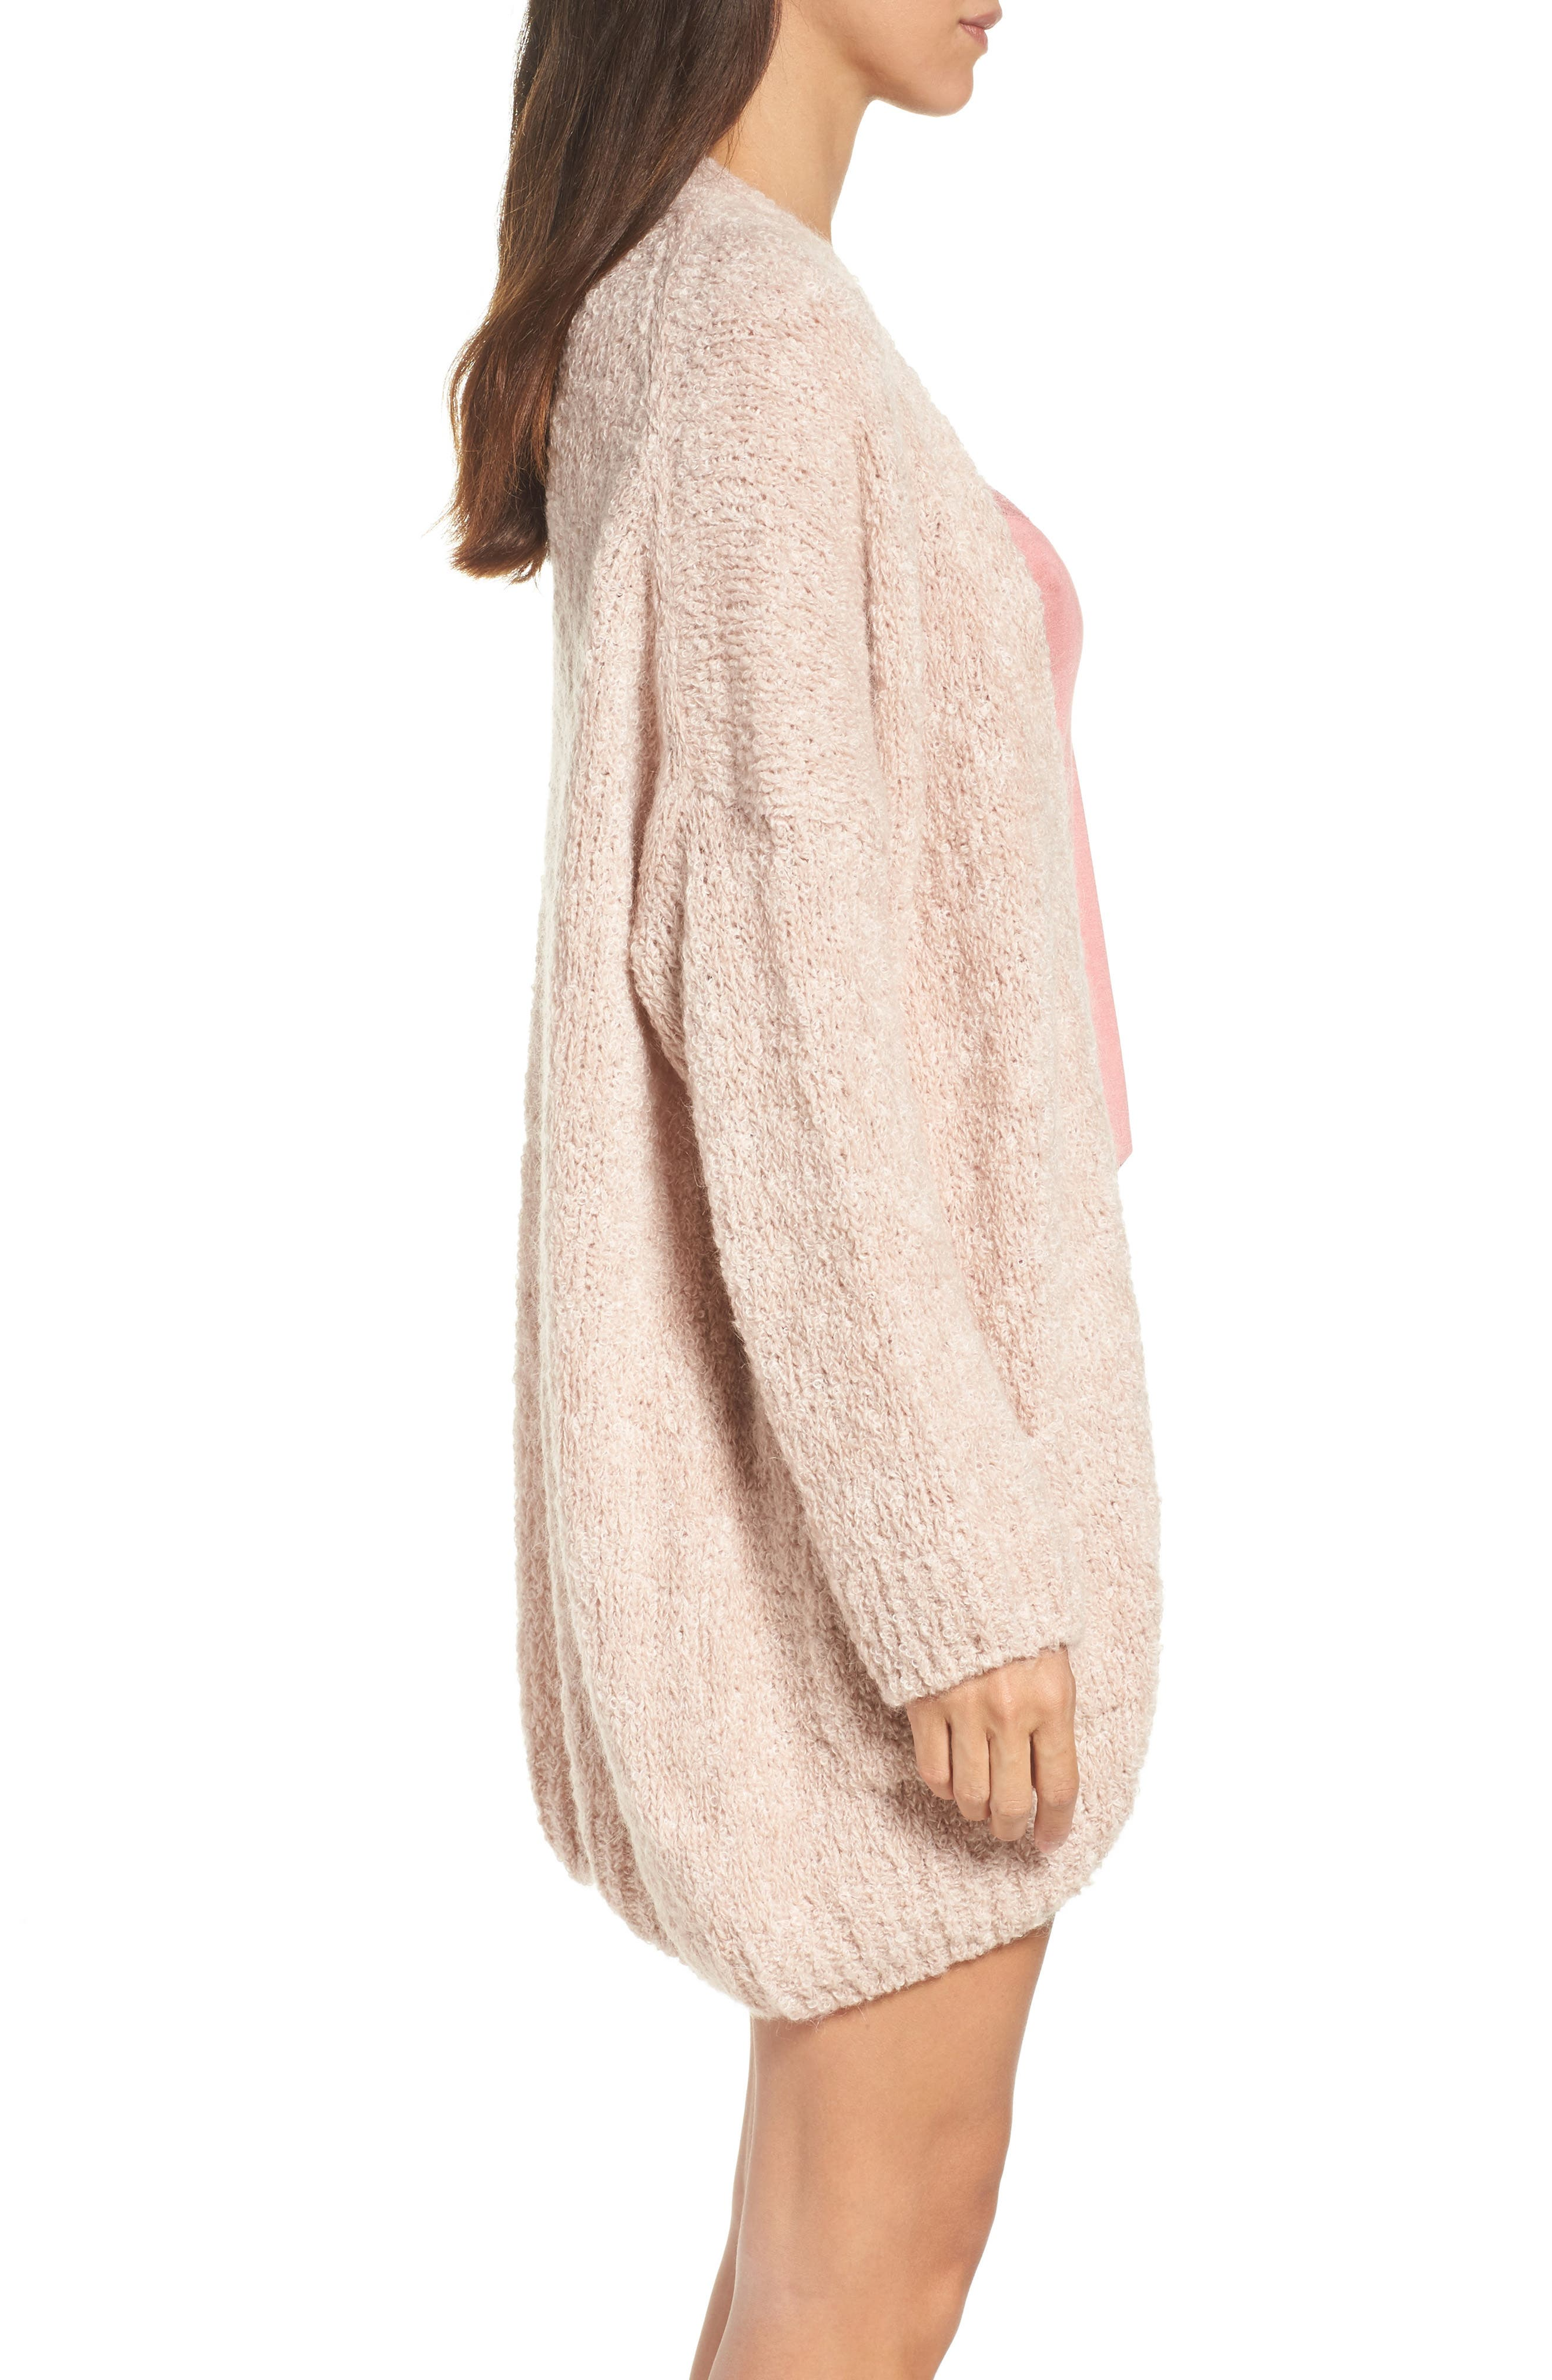 Lana Oversize Cardigan,                             Alternate thumbnail 3, color,                             Cameo Pink